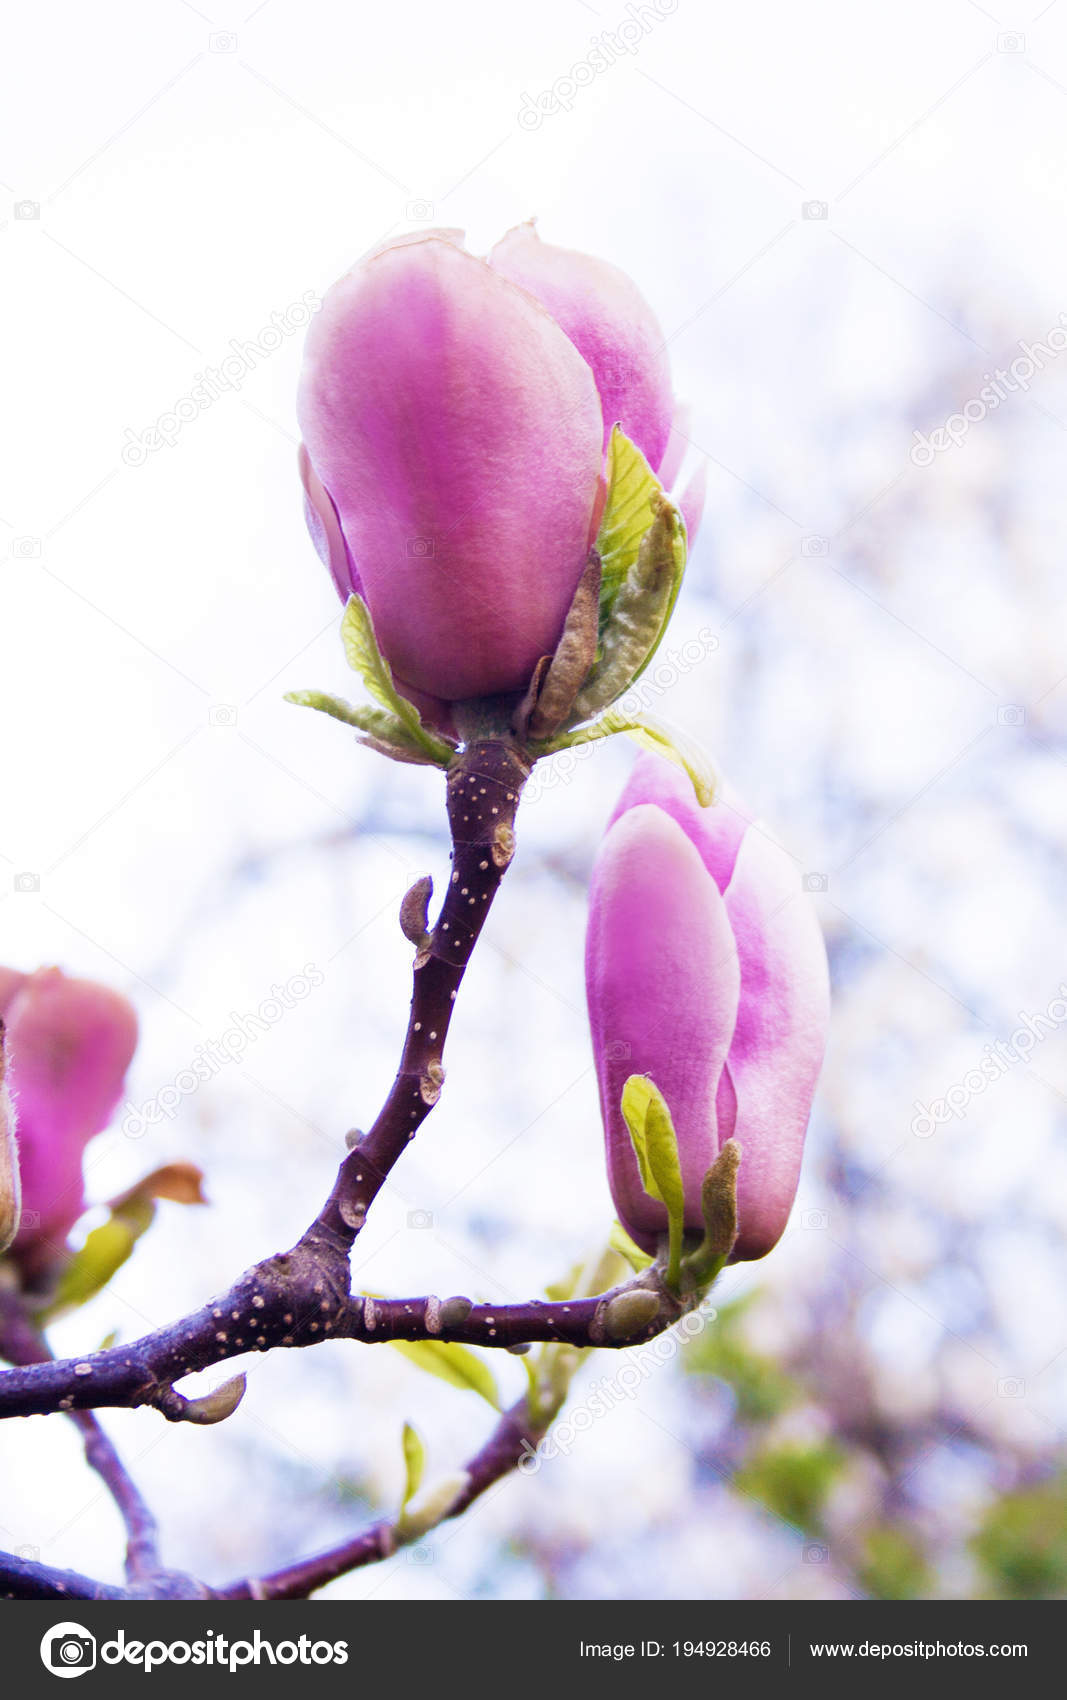 Pink Magnolia Flowers Branch On The Natural Spring Outdoor